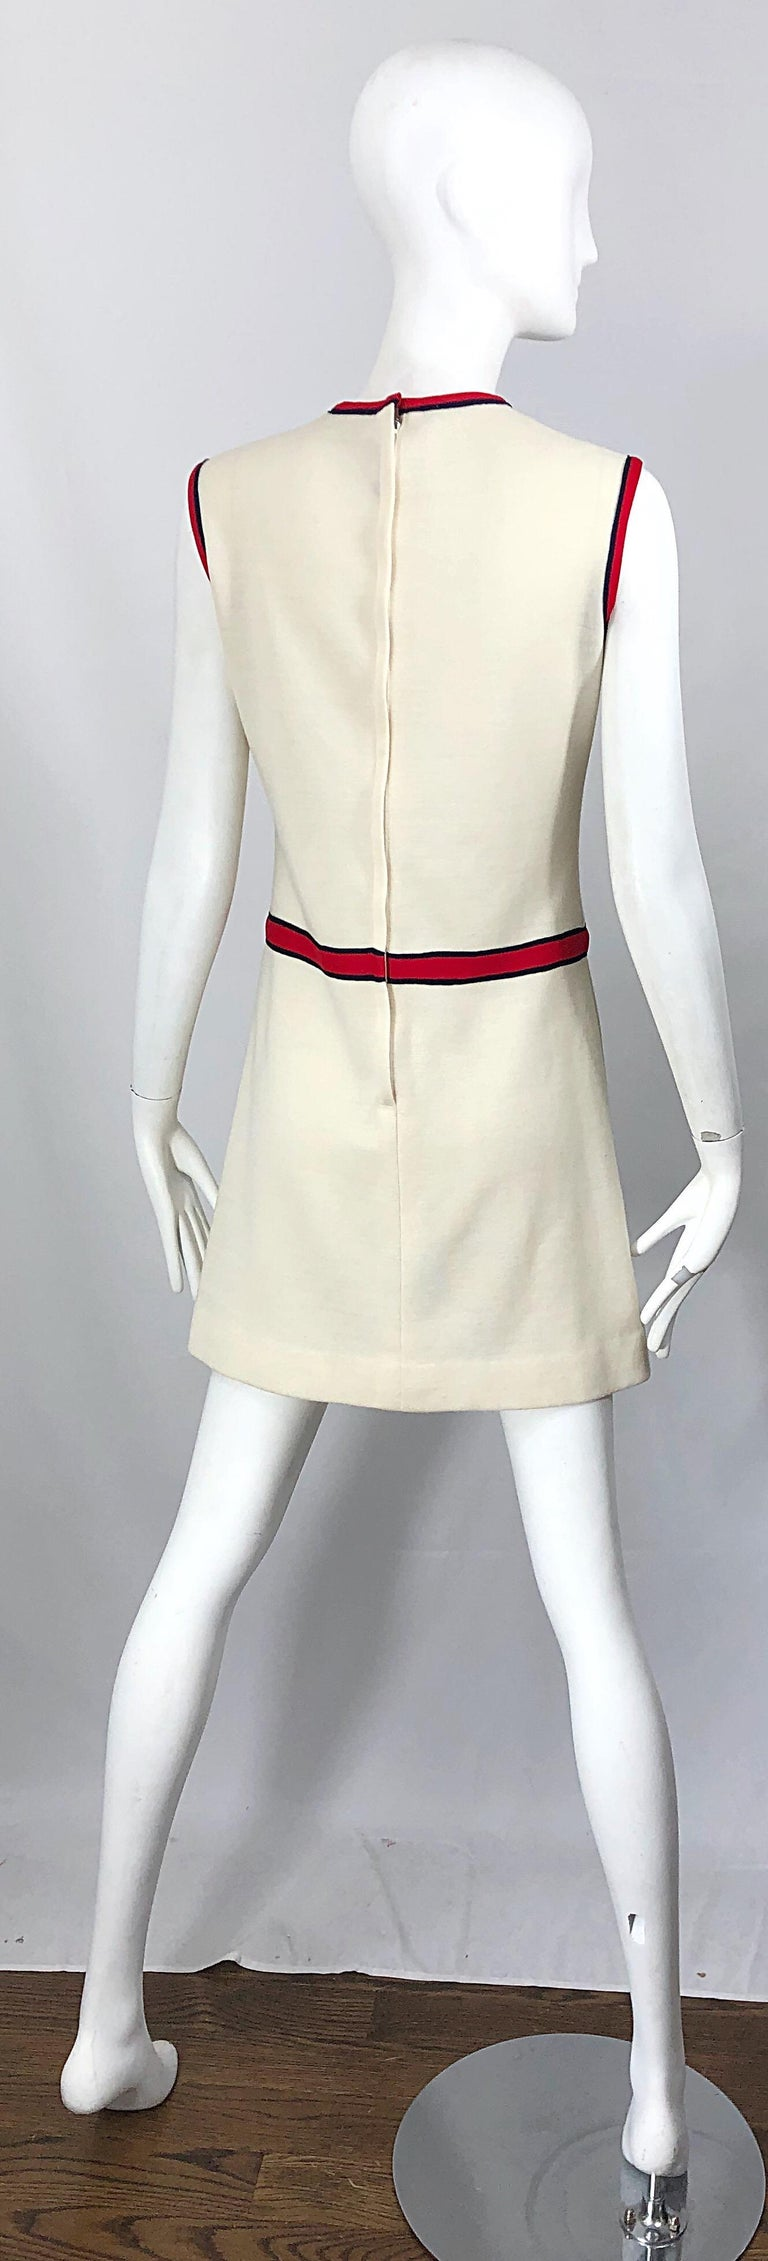 Chic 1960s Ivory + Navy Blue + Red Knit Vintage 60s Nautical Mod Shift Dress For Sale 7